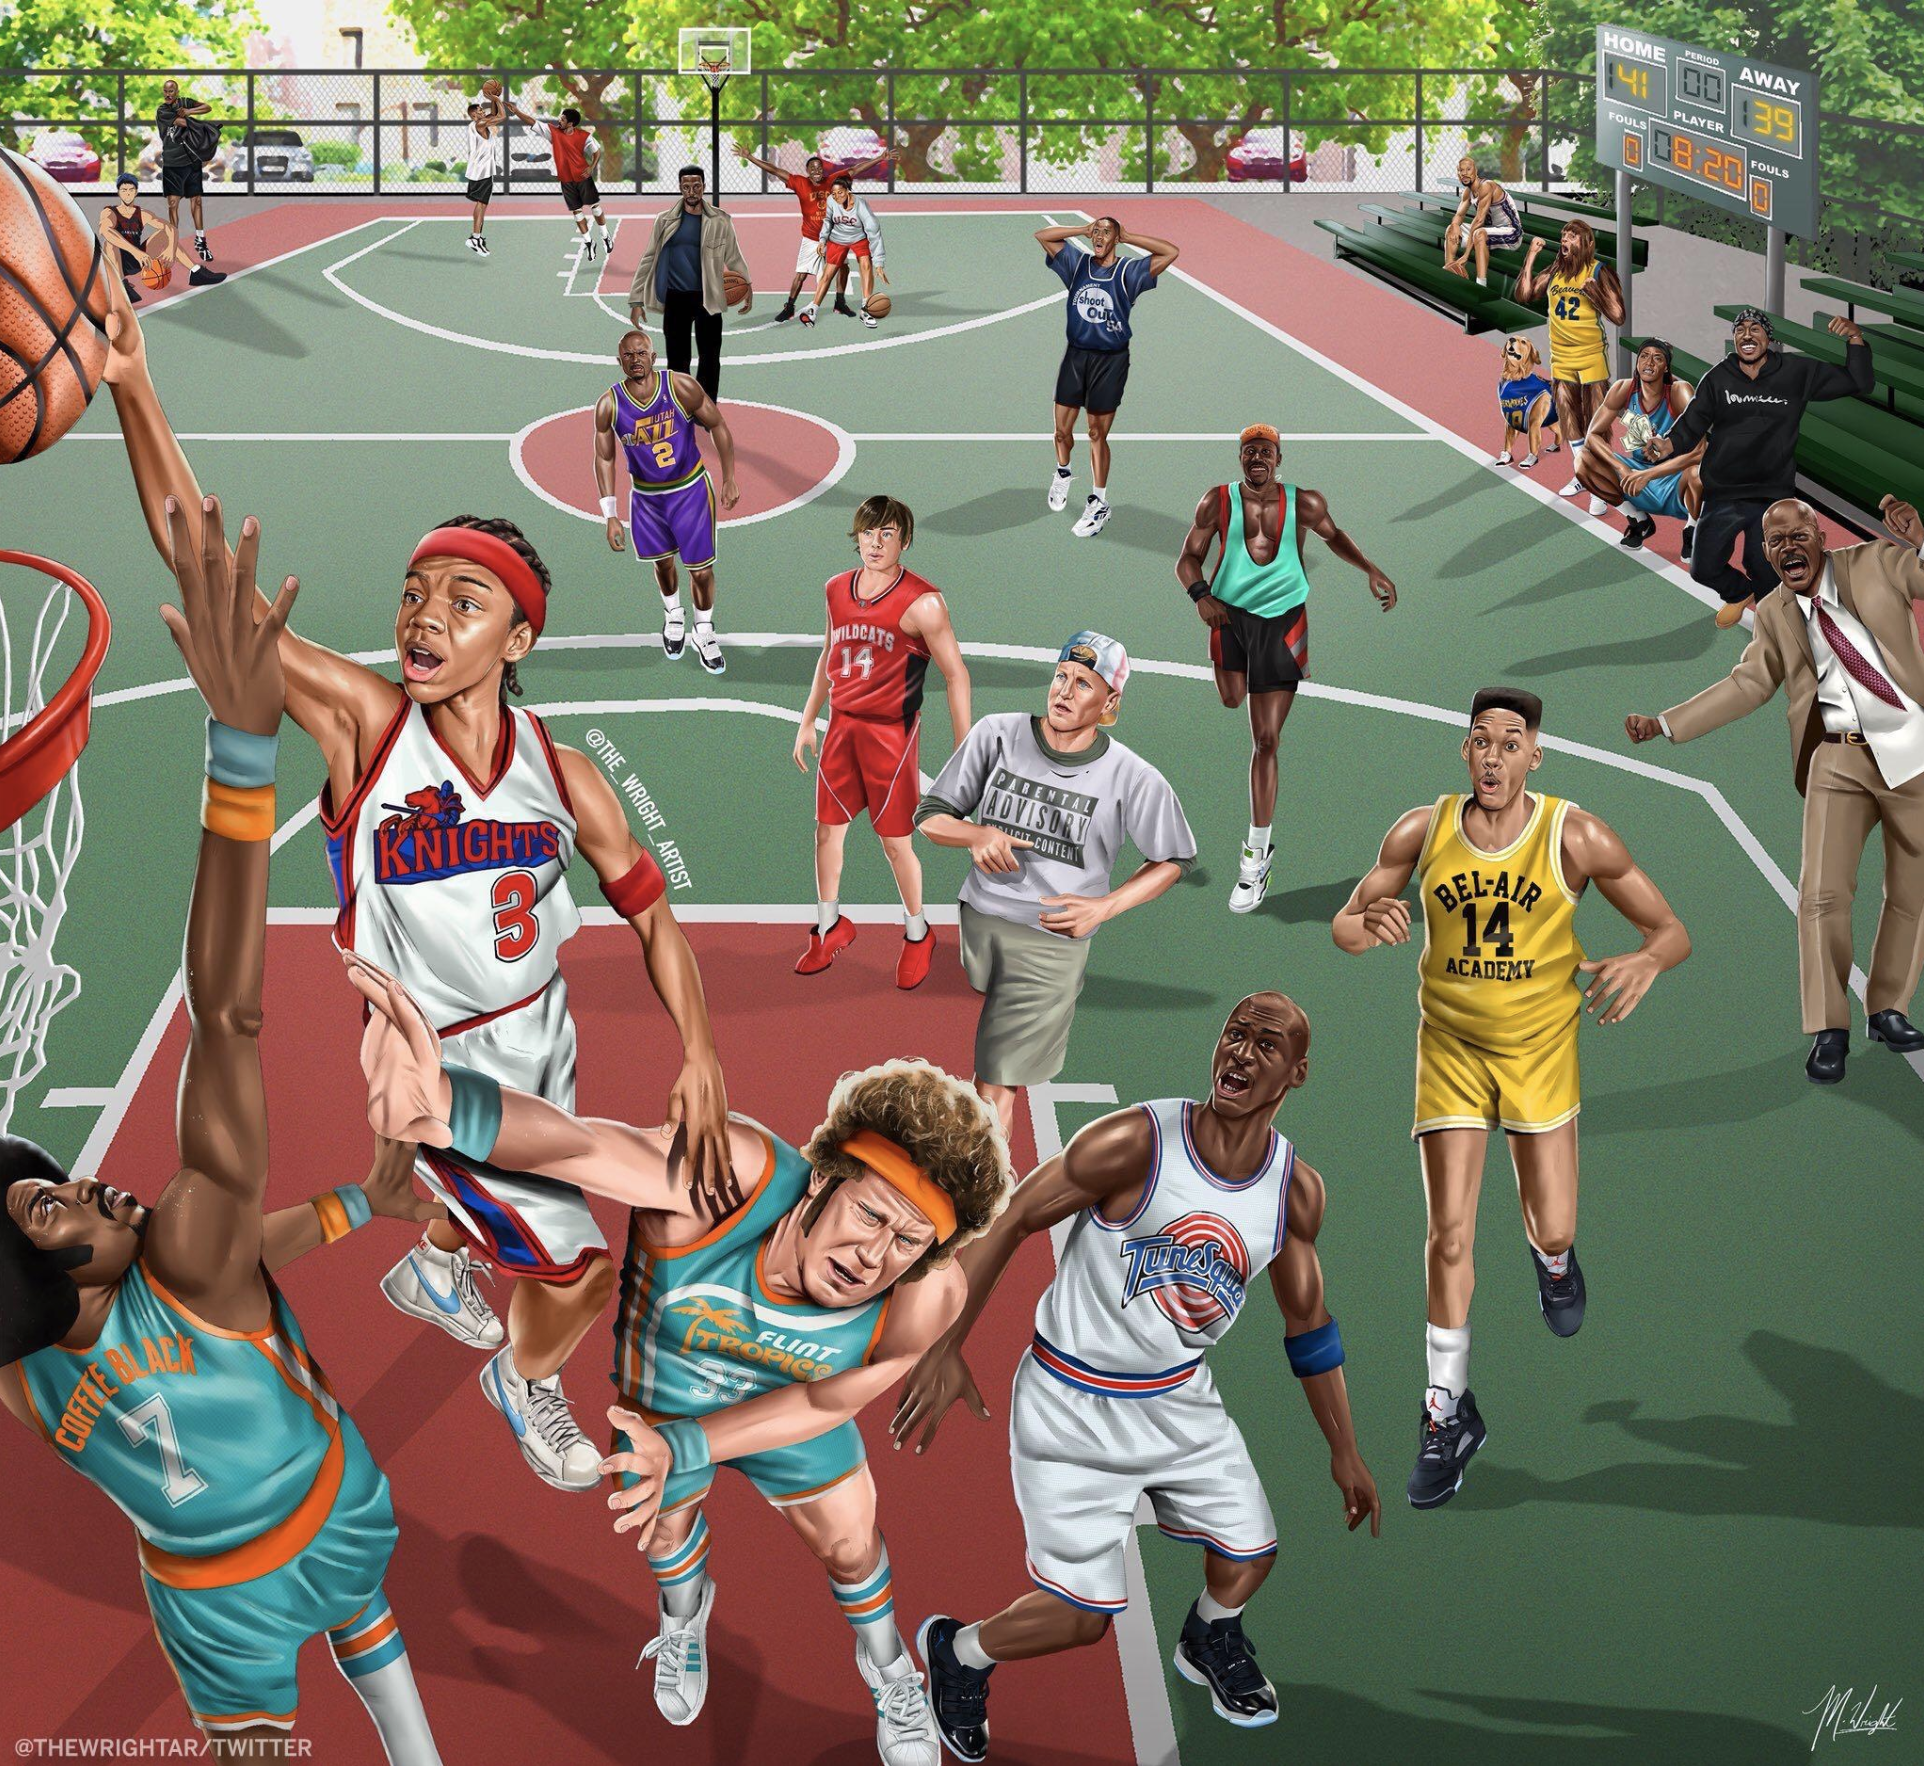 Sports movie character collage